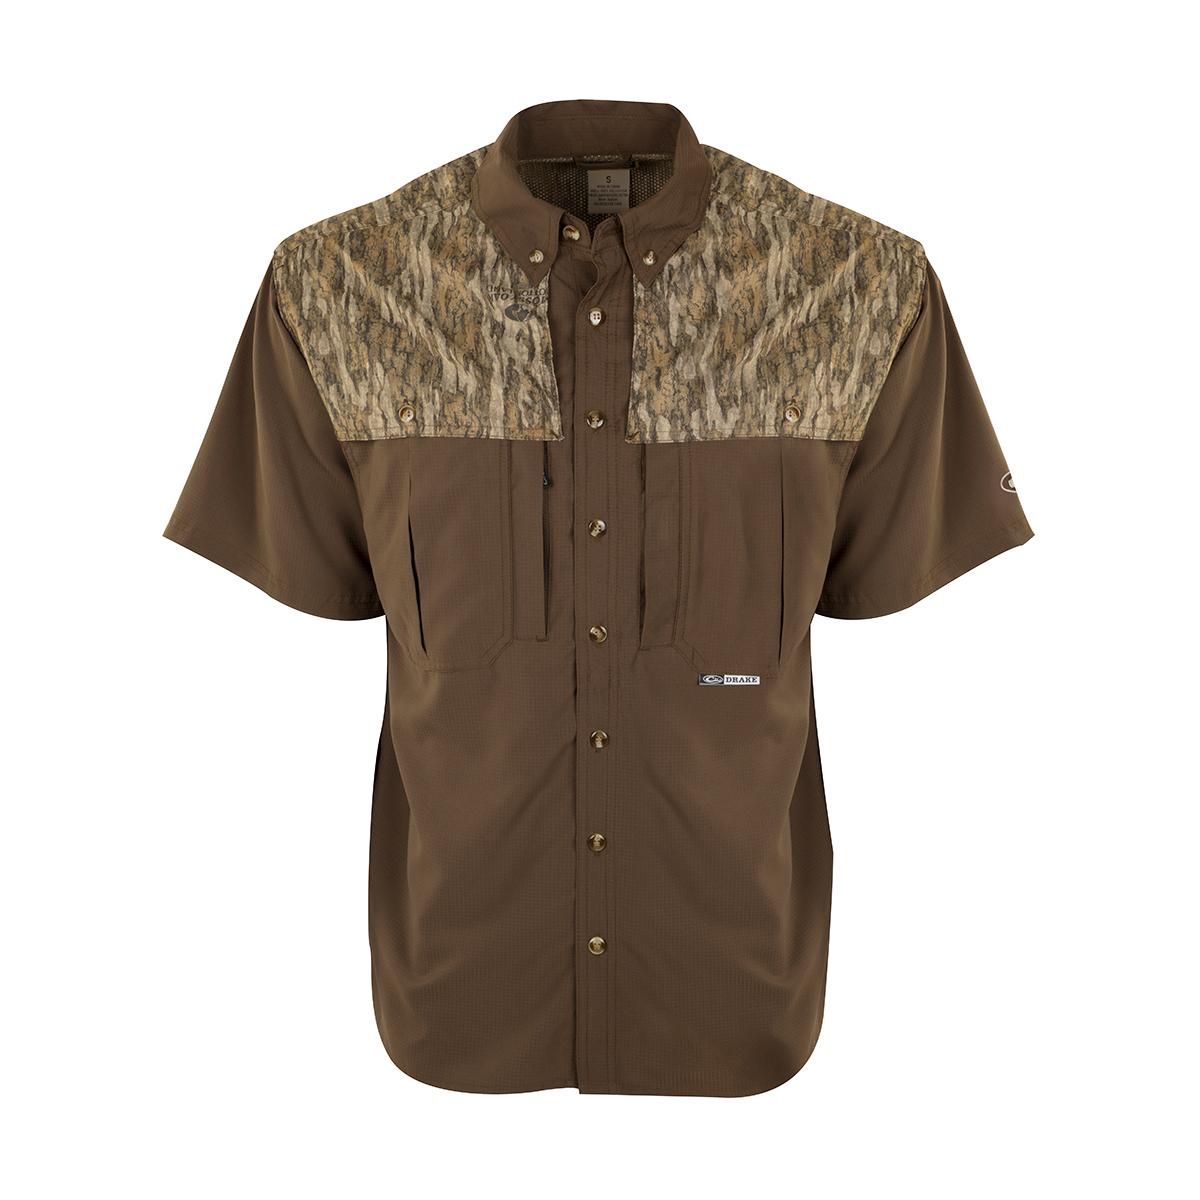 Bottomland-Two-Tone-Drake-Flyweight-Wingshooters-Shirt-SS-Big-Tall-BigCamo